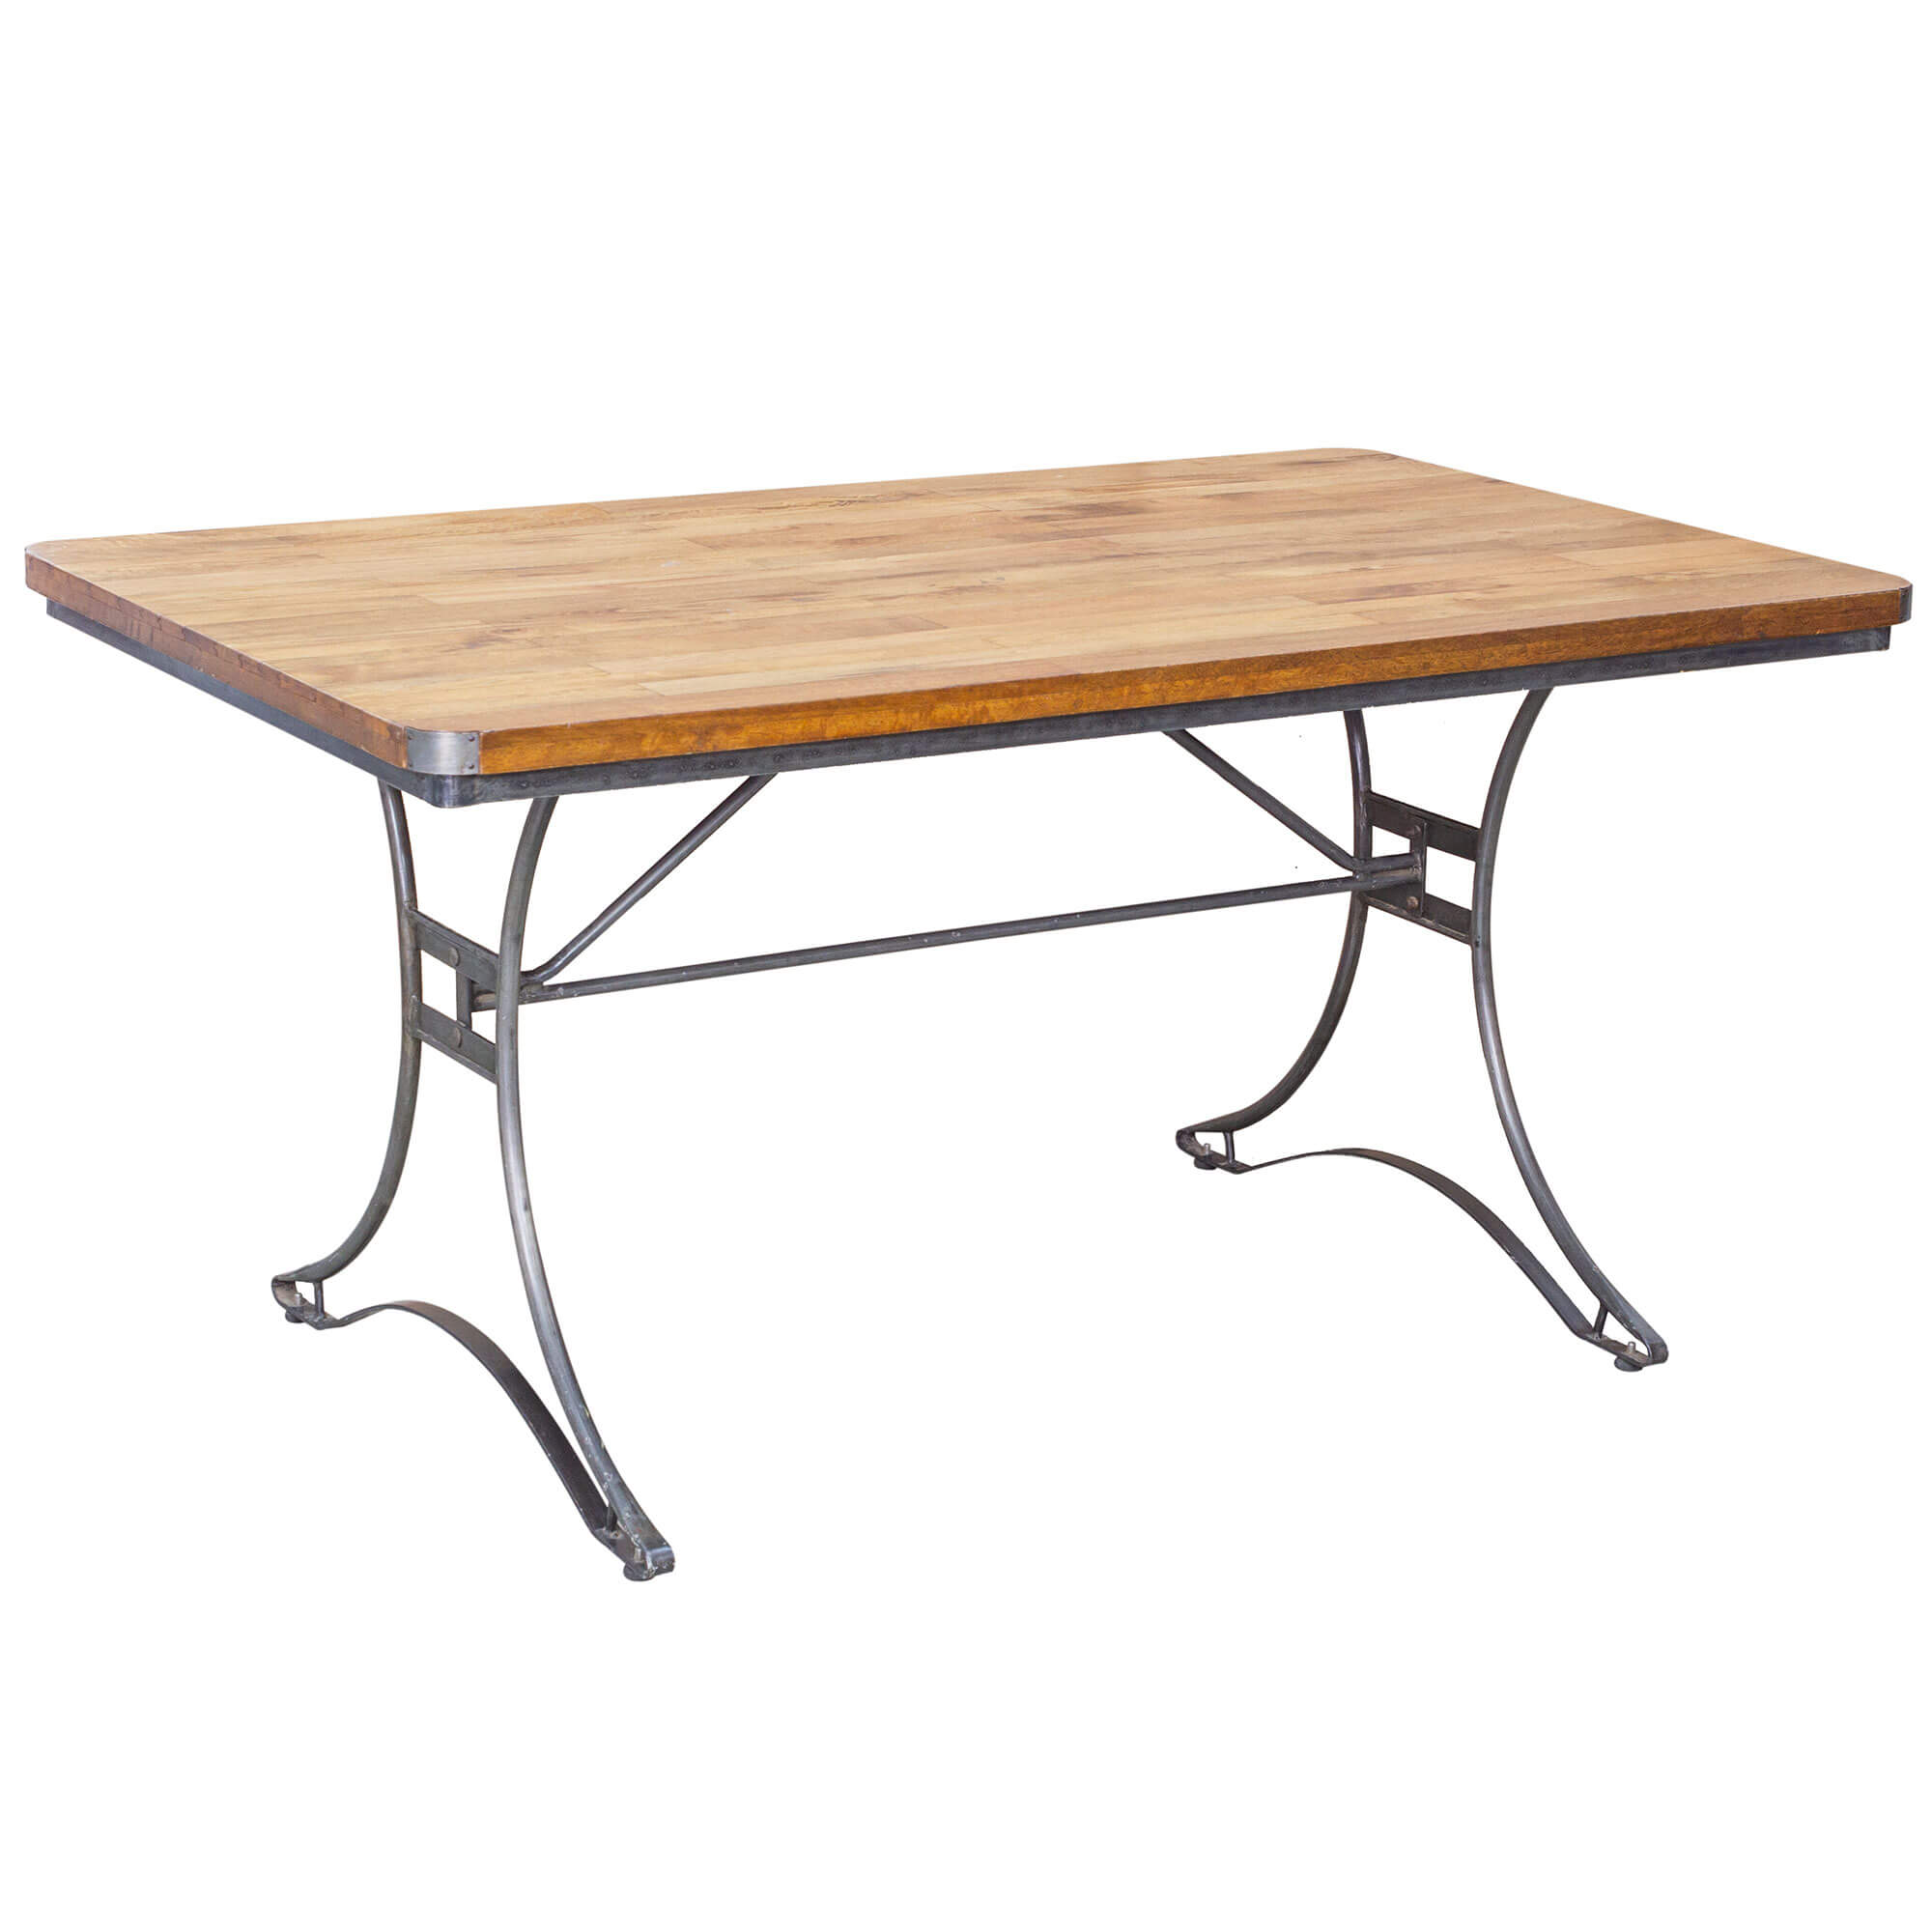 Urban Rectangular Dining Table x6 Chairs | Solid Wood |